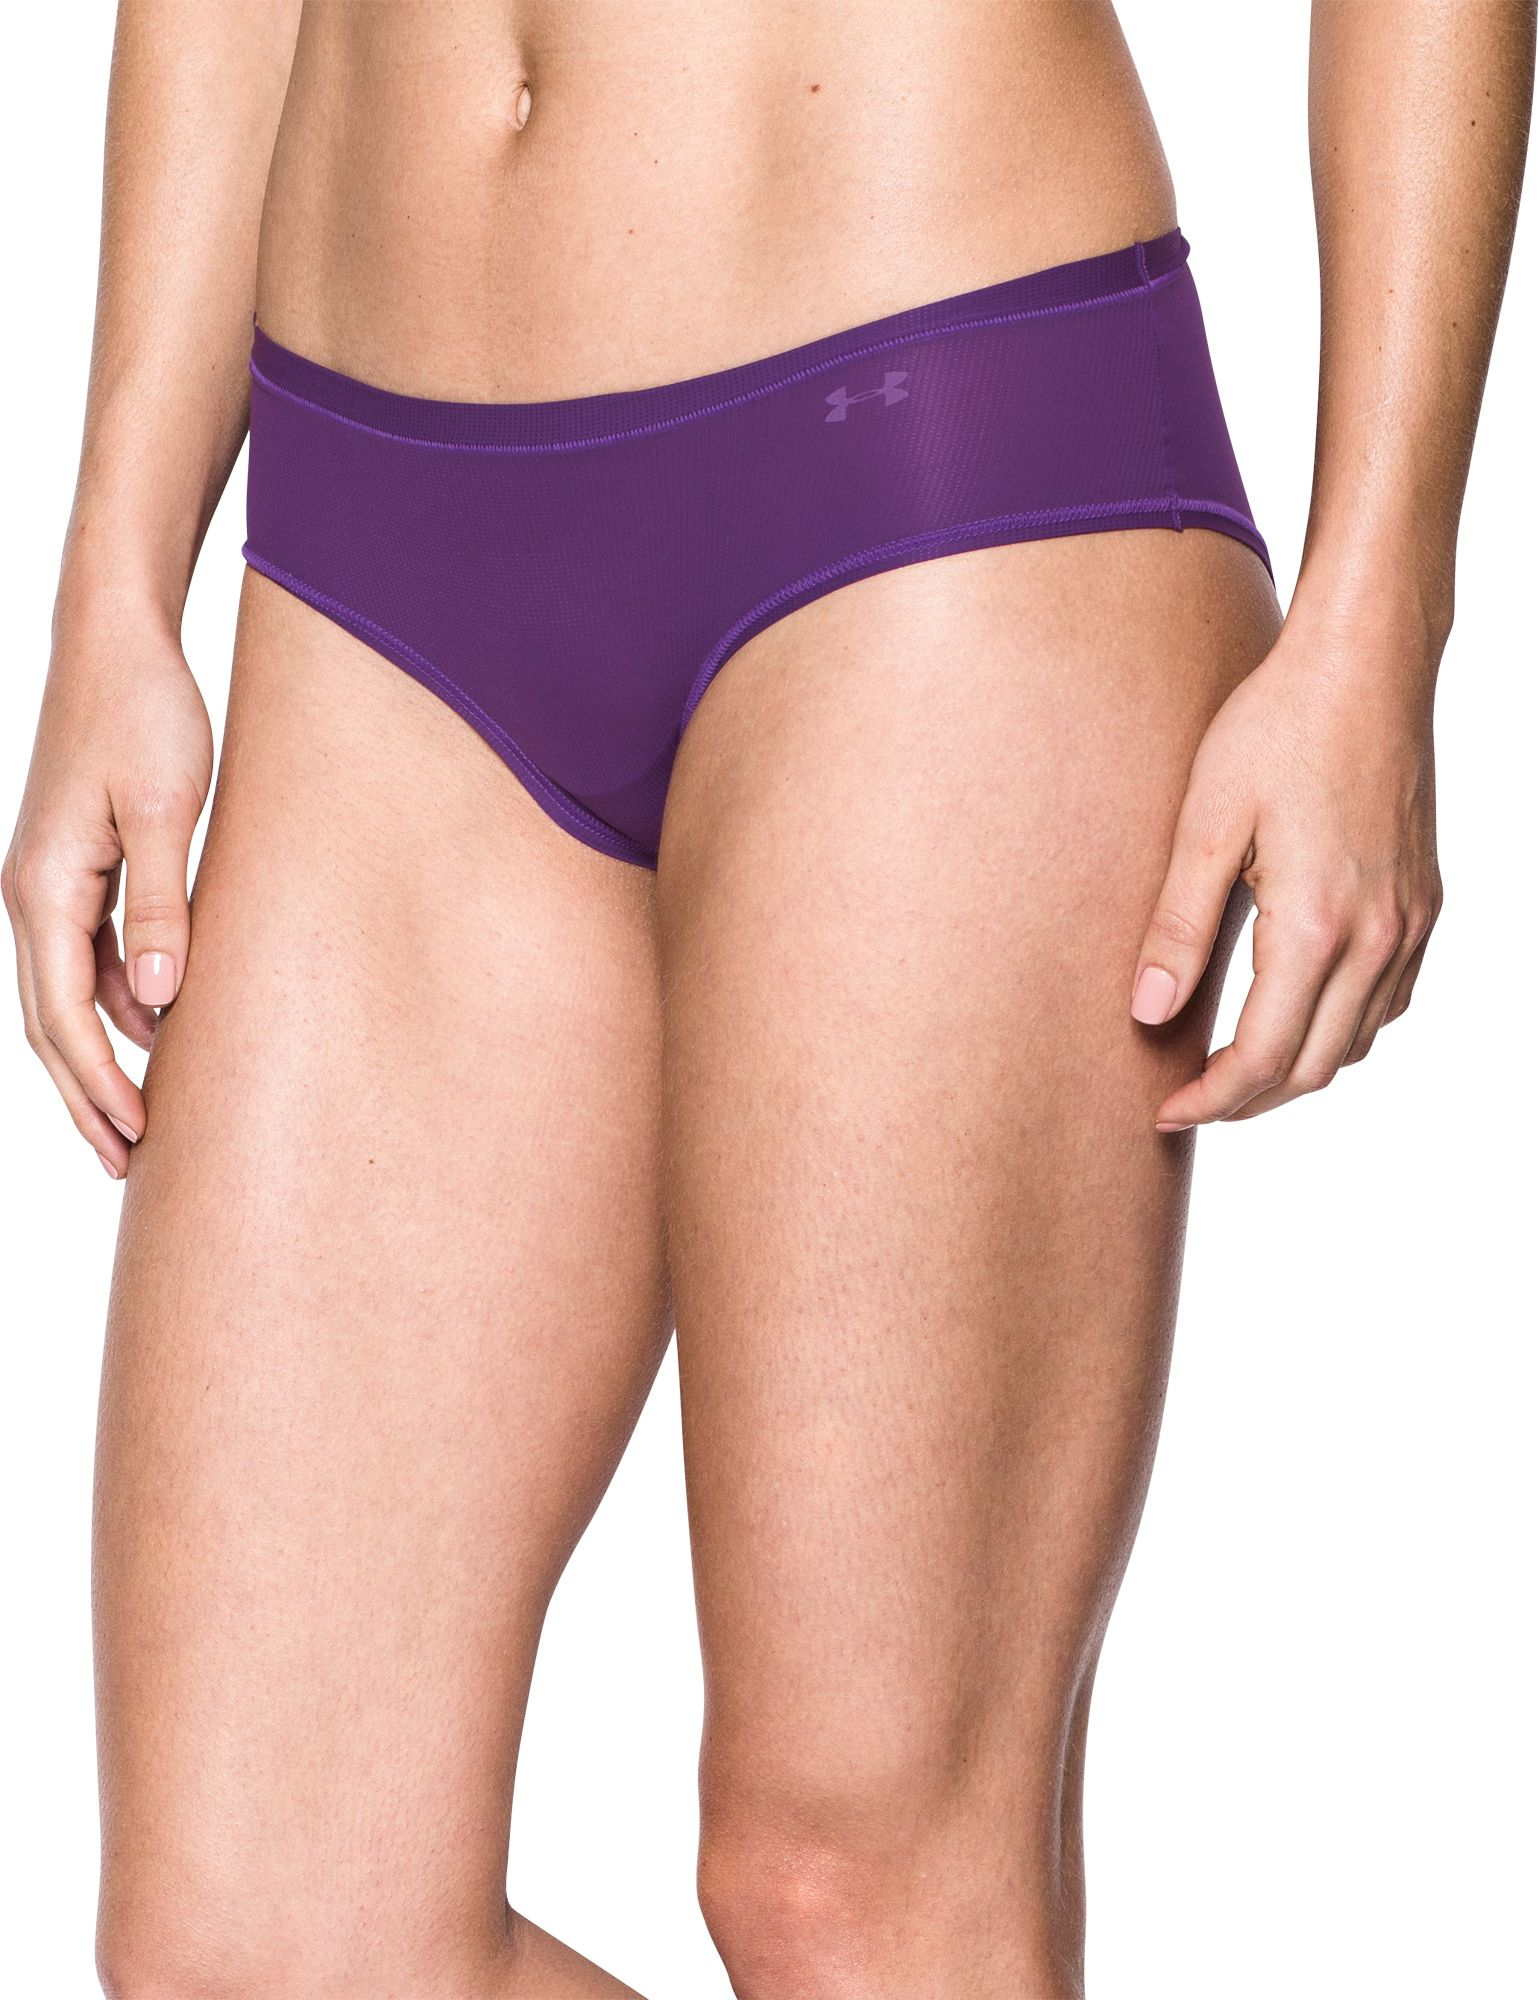 Product Image Under Armour Women S Pure Stretch Sheer Hipster Underwear